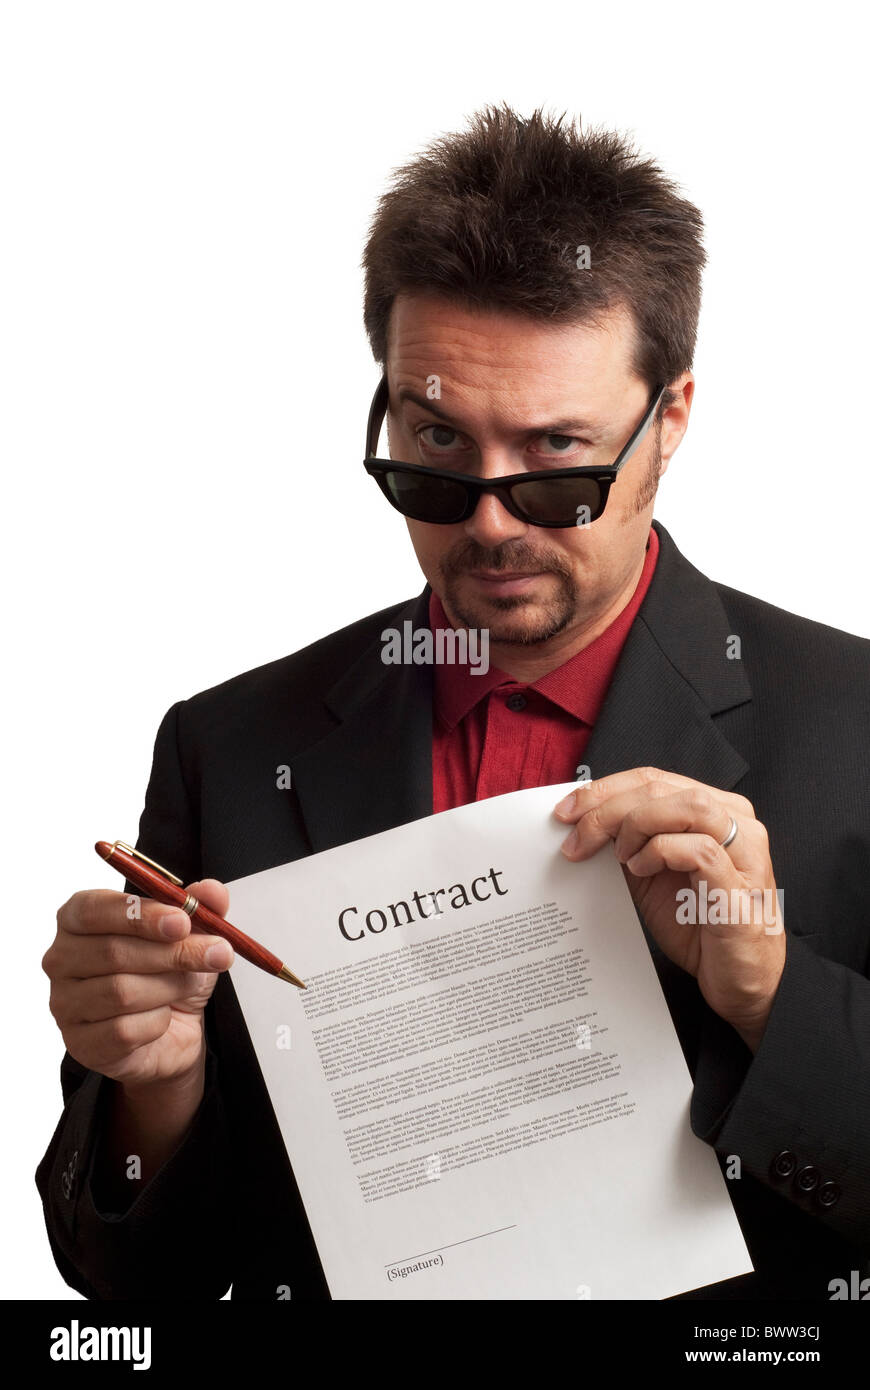 Shady and untrustworthy business man offering pen to sign a contract. Studioshot on white background - Stock Image